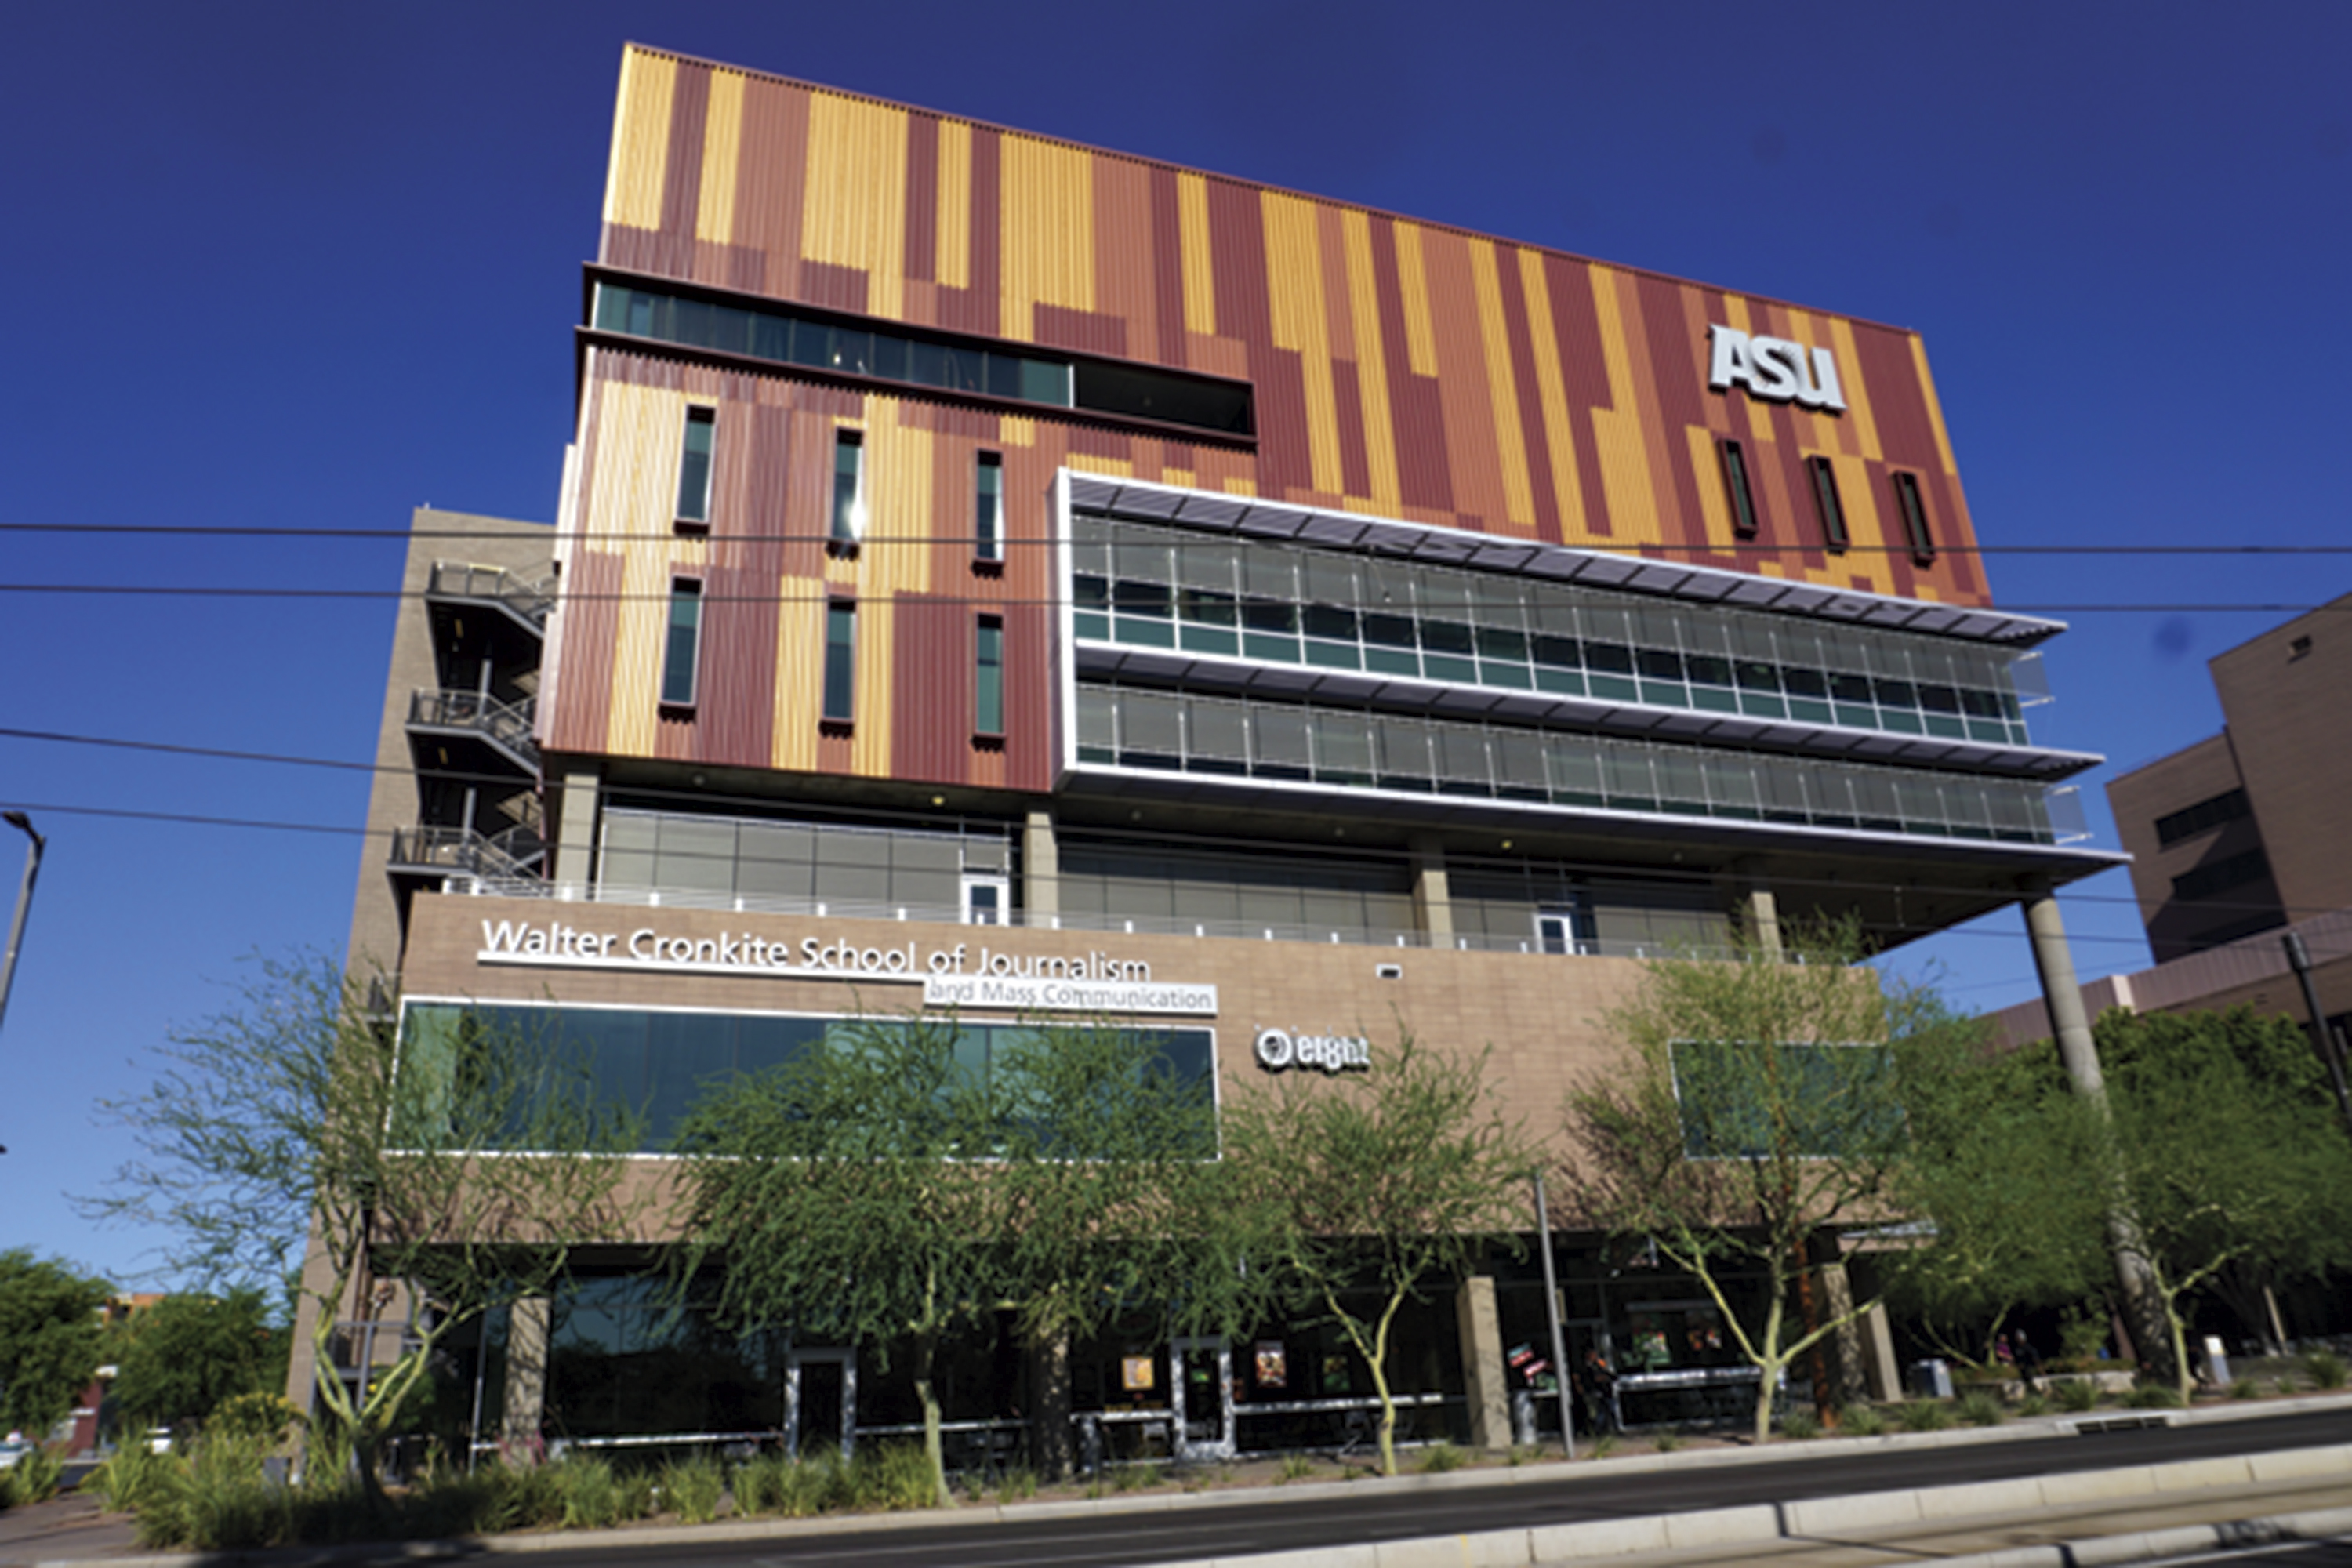 ASU Downtown Phoenix's journalism buildling; Photo courtesy Douglas C. Towne